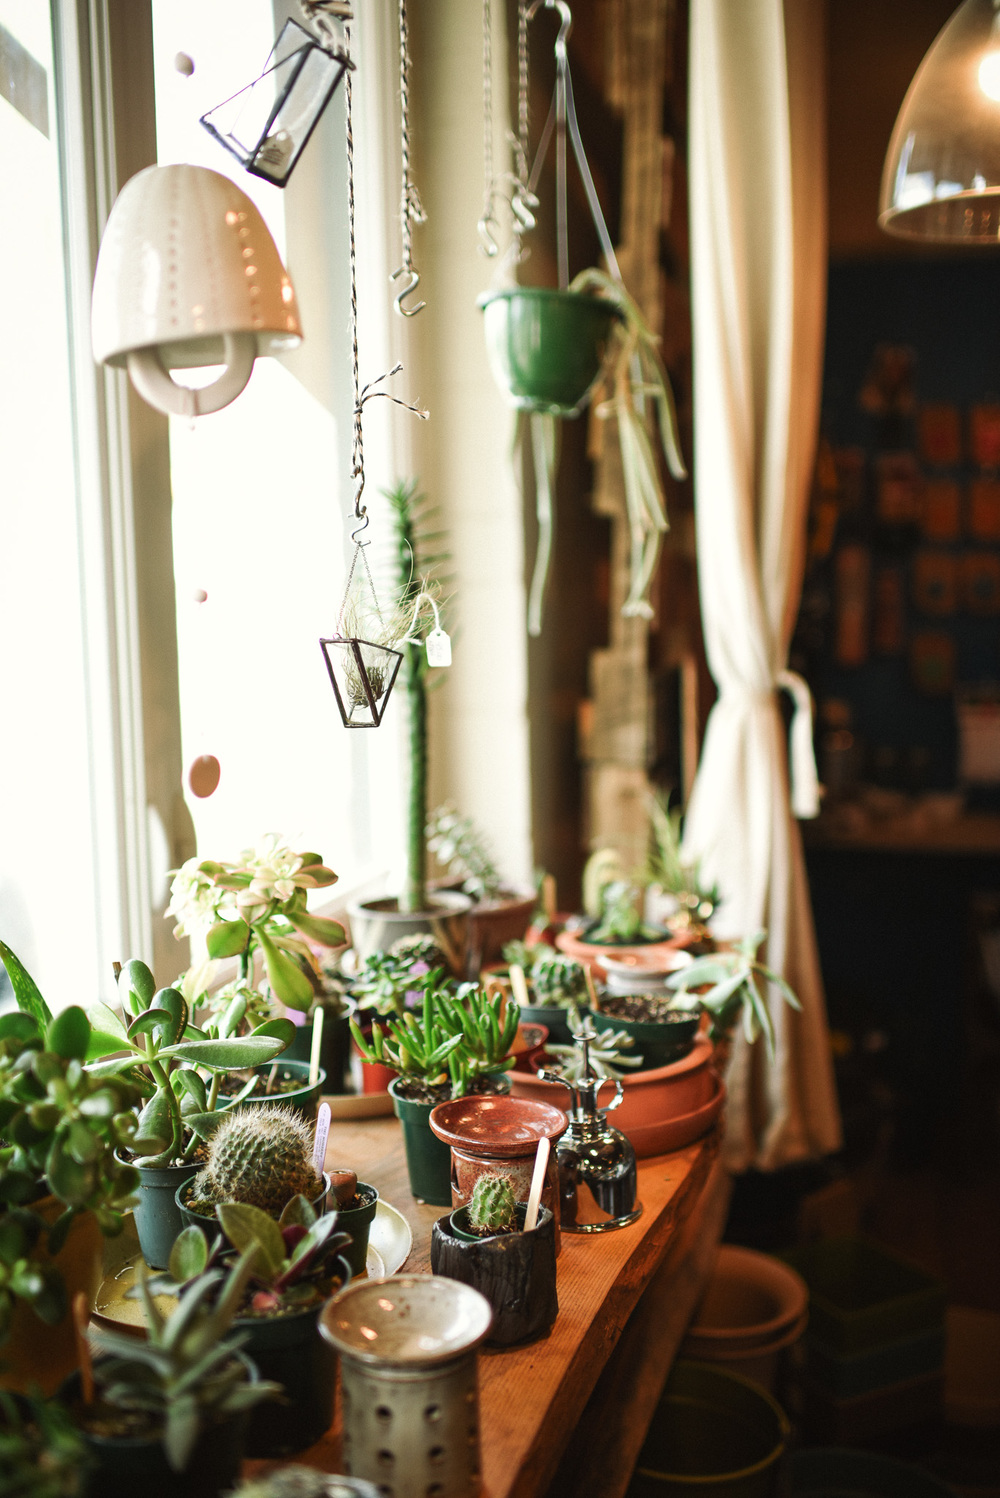 Earth Day: Best Places in Asheville to get seeds, starter plants & supplies.  Villagers in West Asheville offers supplies and workshops for the sustainable lifestyle. Photo: Chelsea Lane Photograph